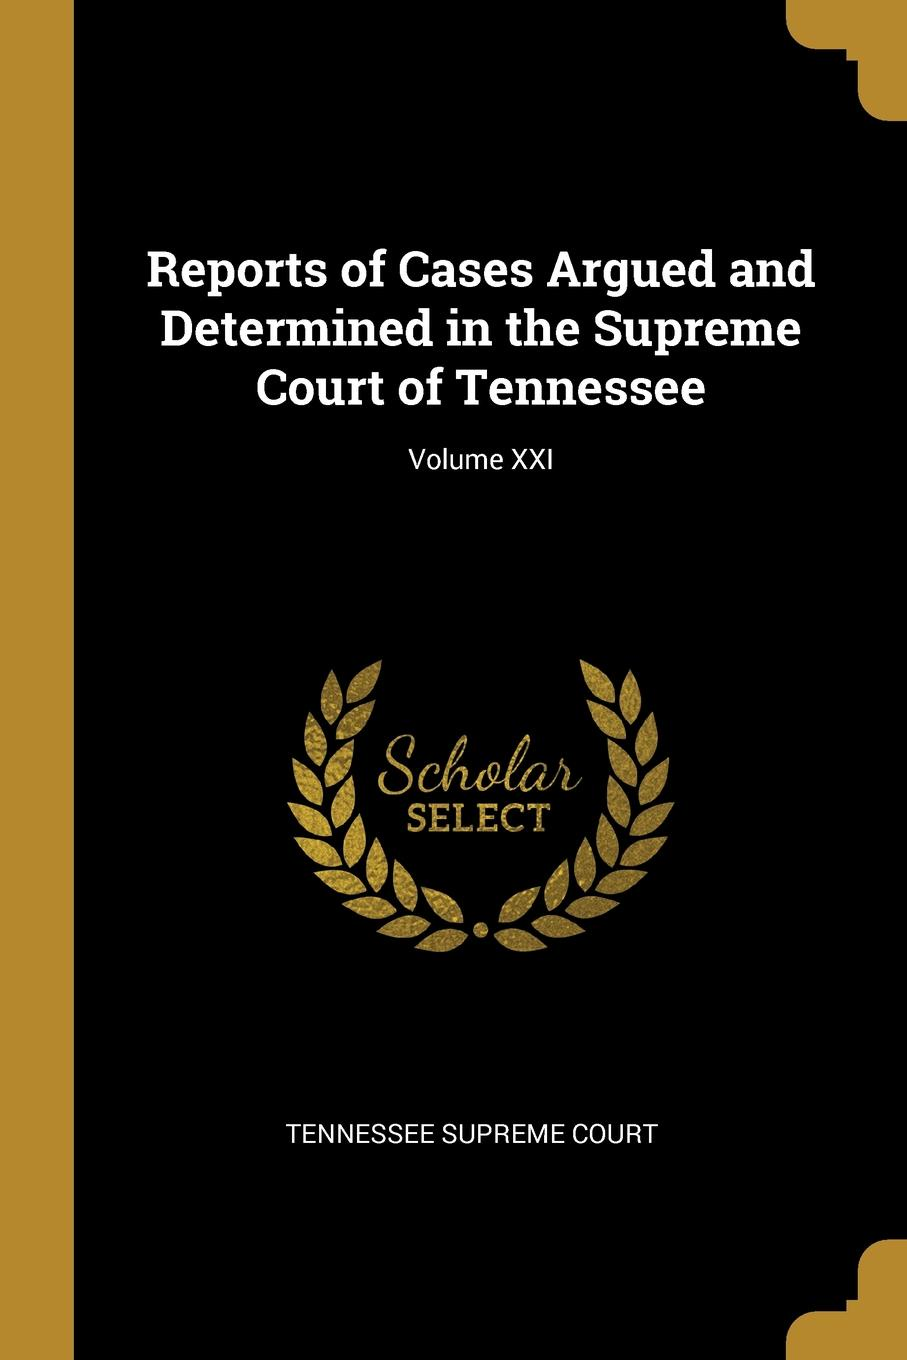 Tennessee Supreme Court Reports of Cases Argued and Determined in the Supreme Court of Tennessee; Volume XXI